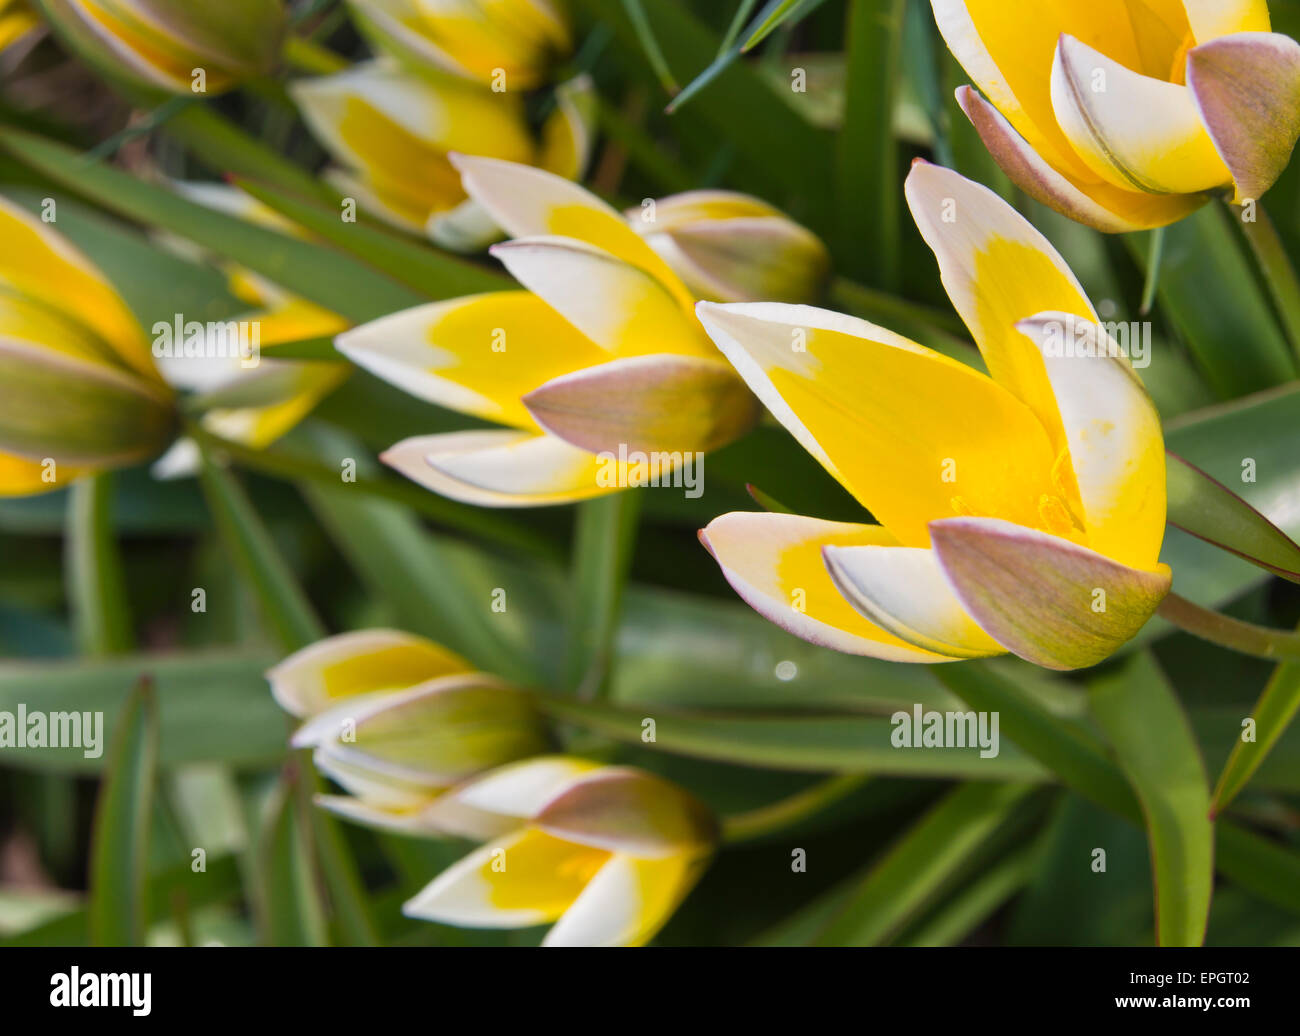 Tulipa tarda or late tulip, yellow and white with pointy petals grows willingly in the university botanical garden, - Stock Image